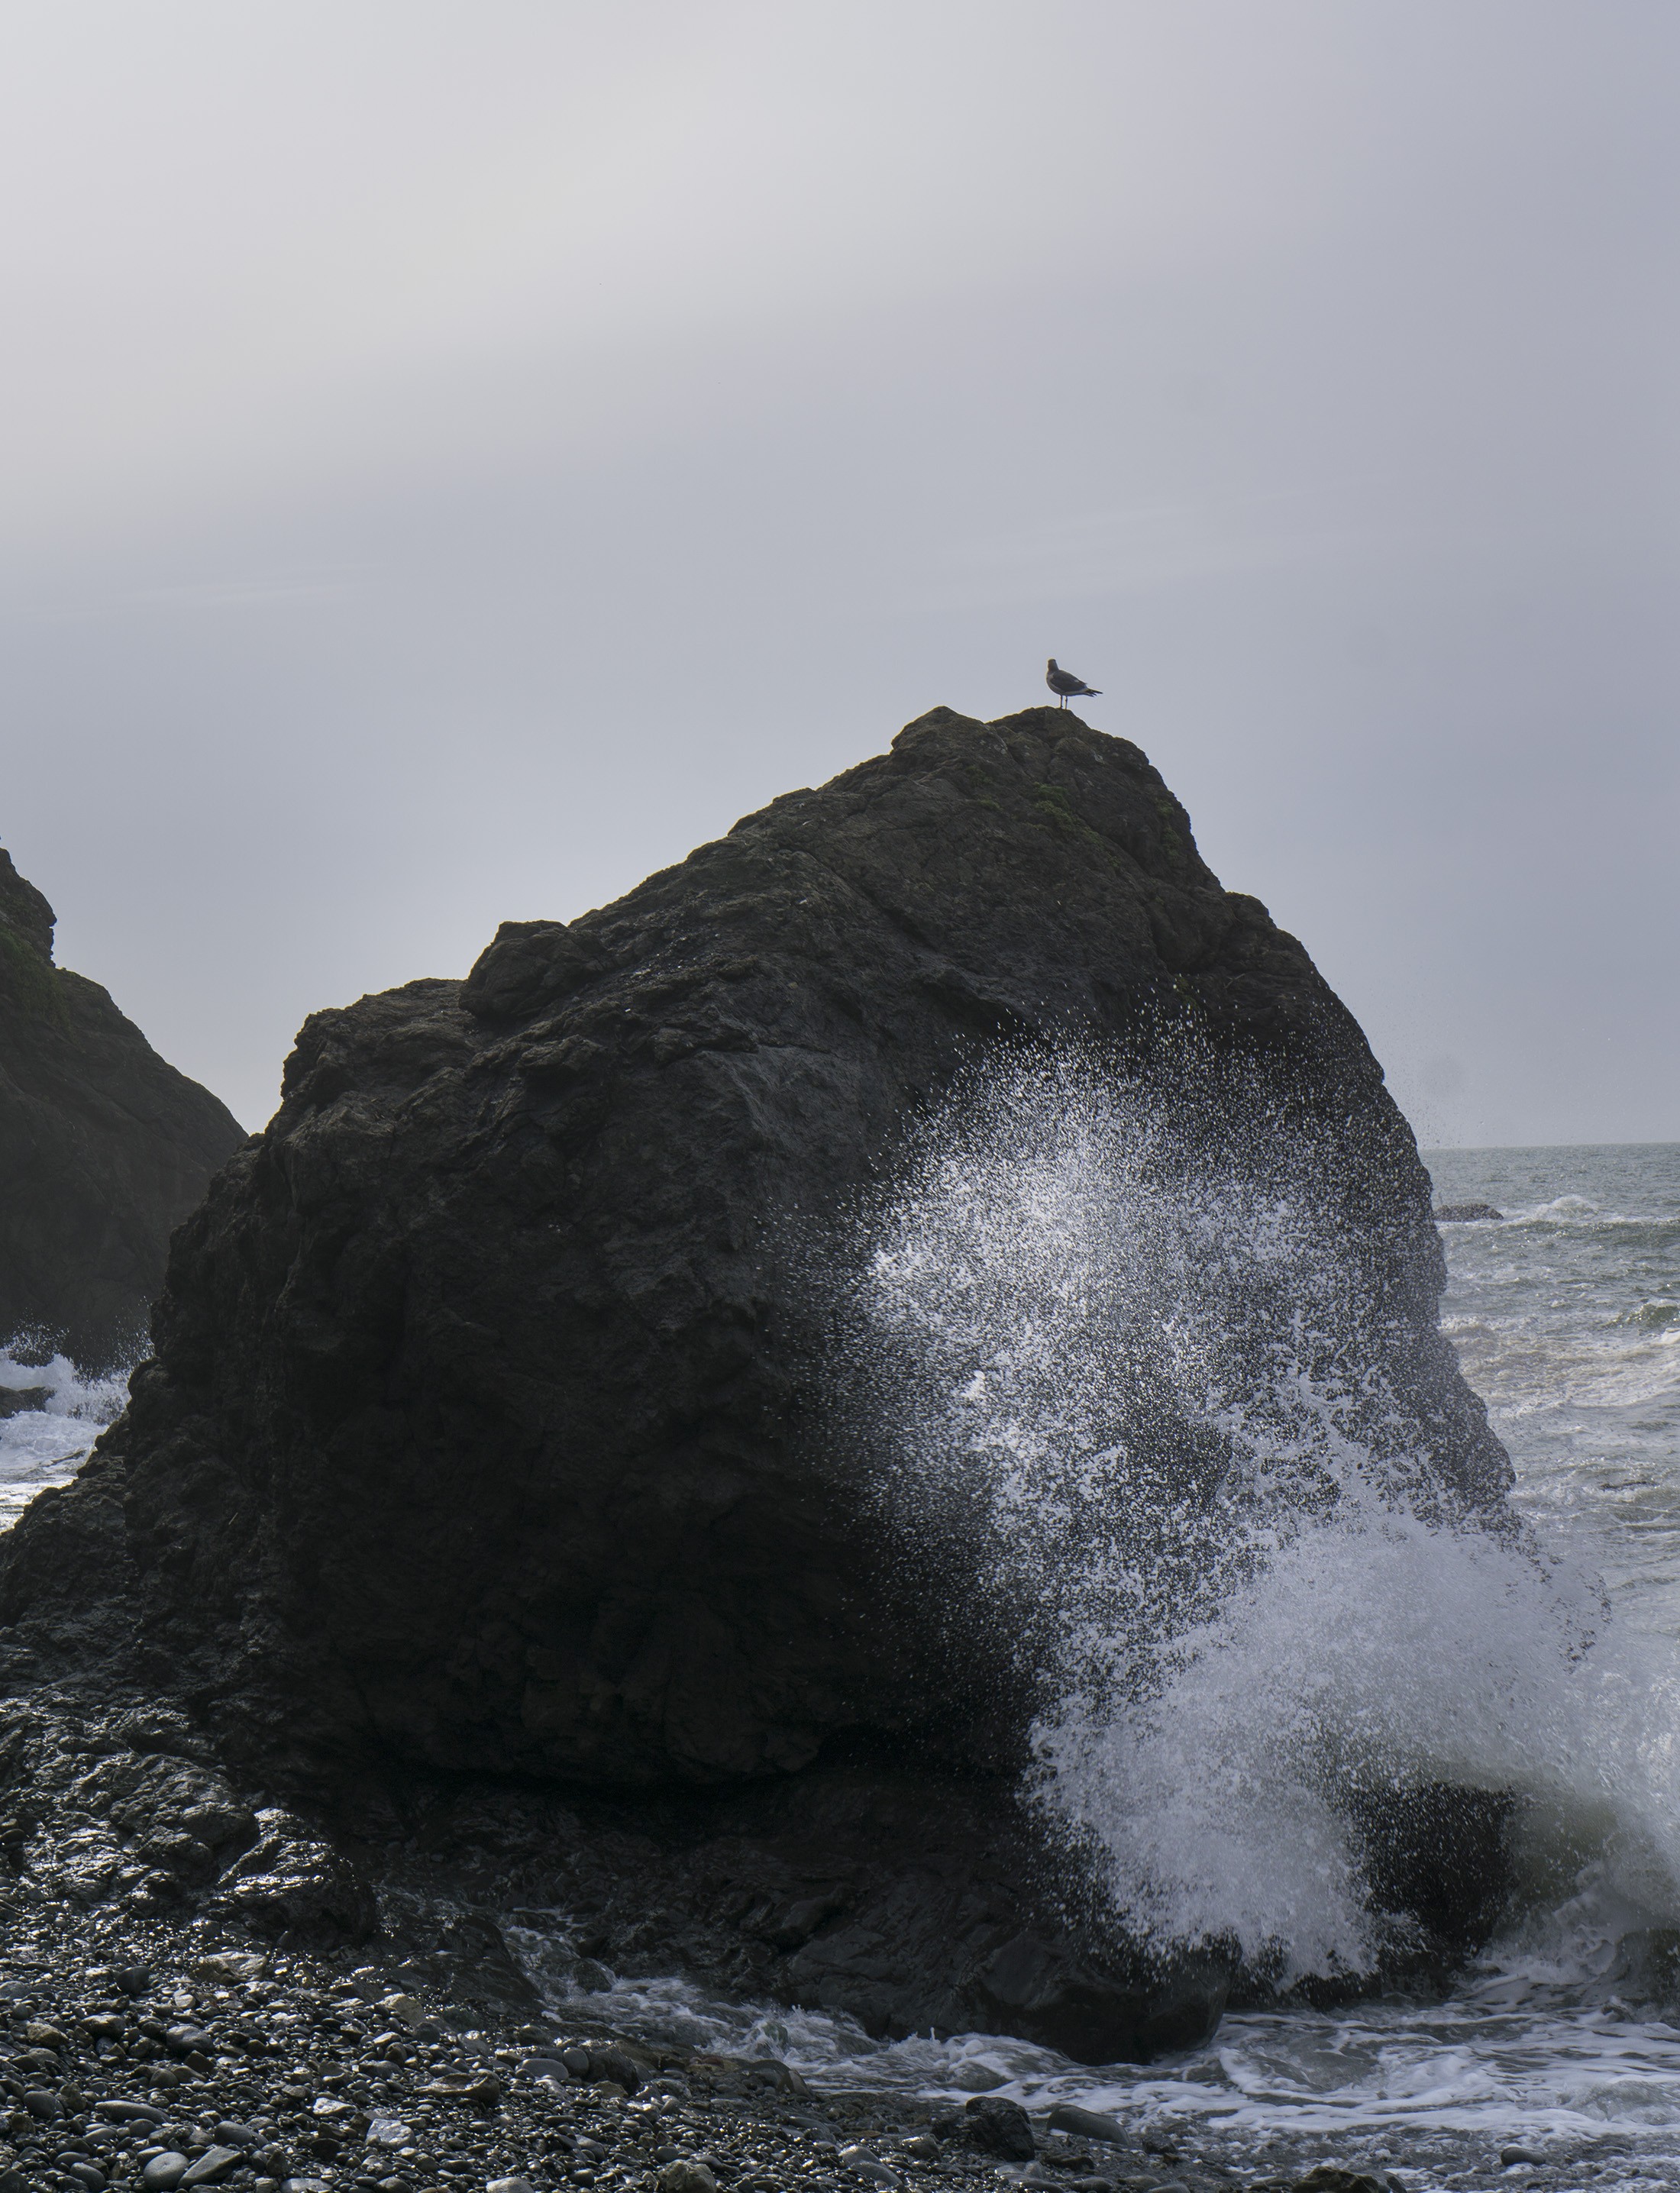 Bird perched on a boulder at Pirates Cove, Marin Headlands, Golden Gate National Recreation Area / Darker than Green